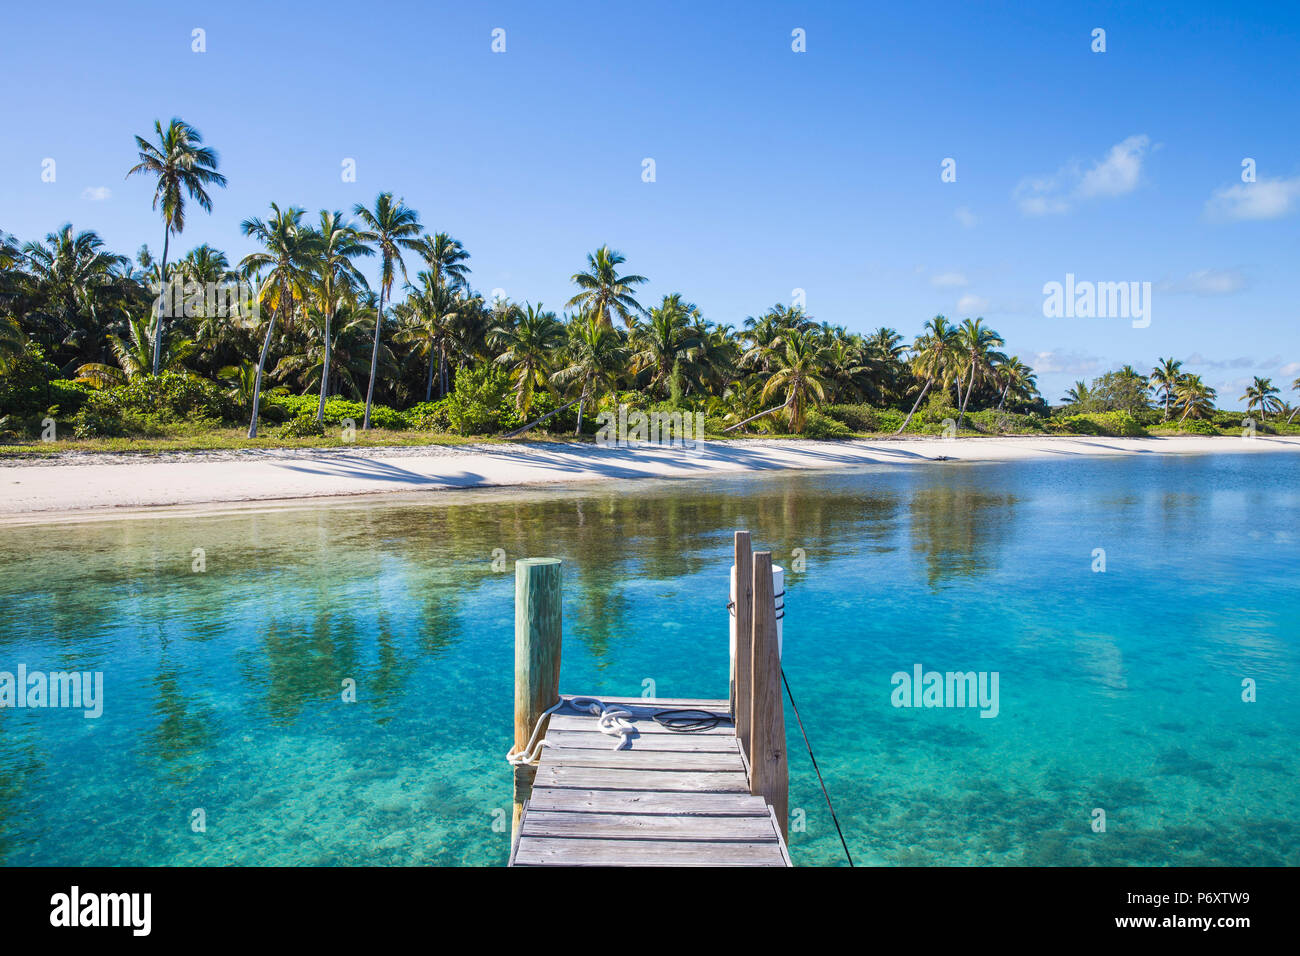 Bahamas, Abaco Islands, Elbow Cay, Tihiti beach - Stock Image